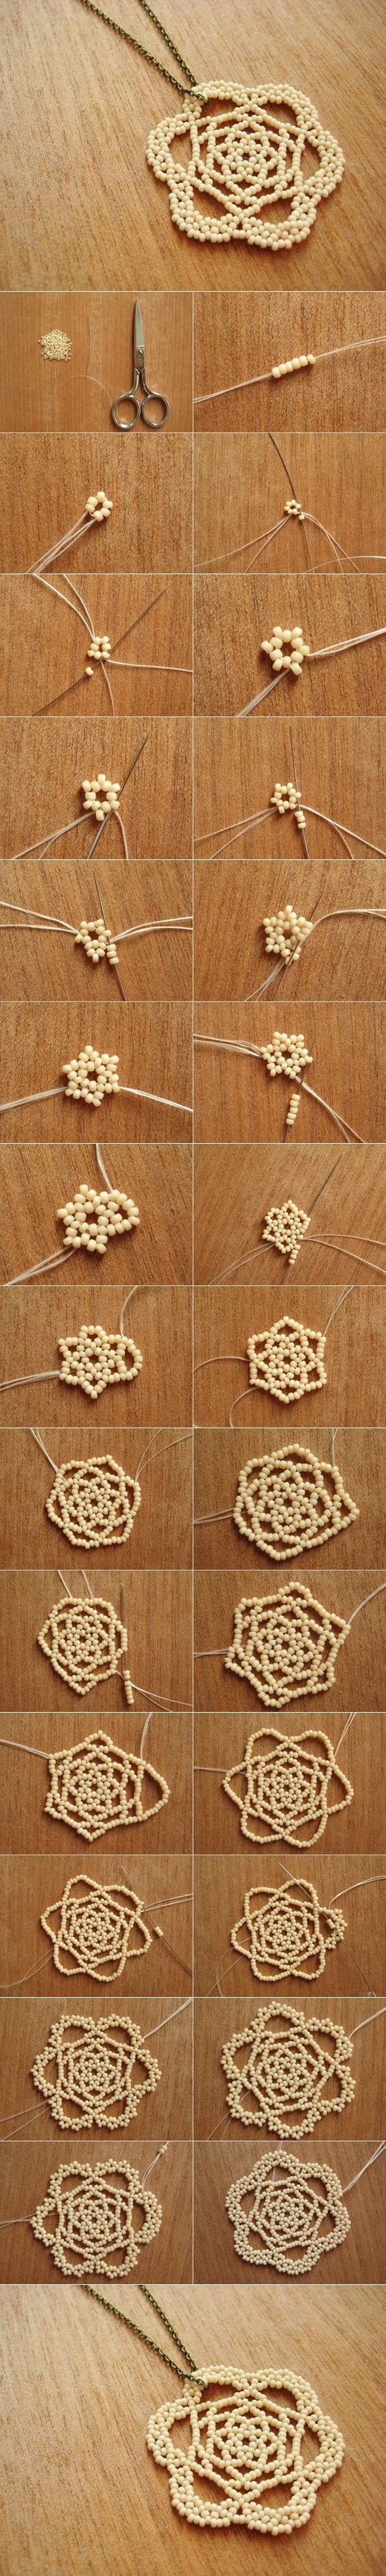 DIY Beaded Rose Necklace Pendant - http://manmadediy.me/diy-beaded-rose-necklace-pendant/